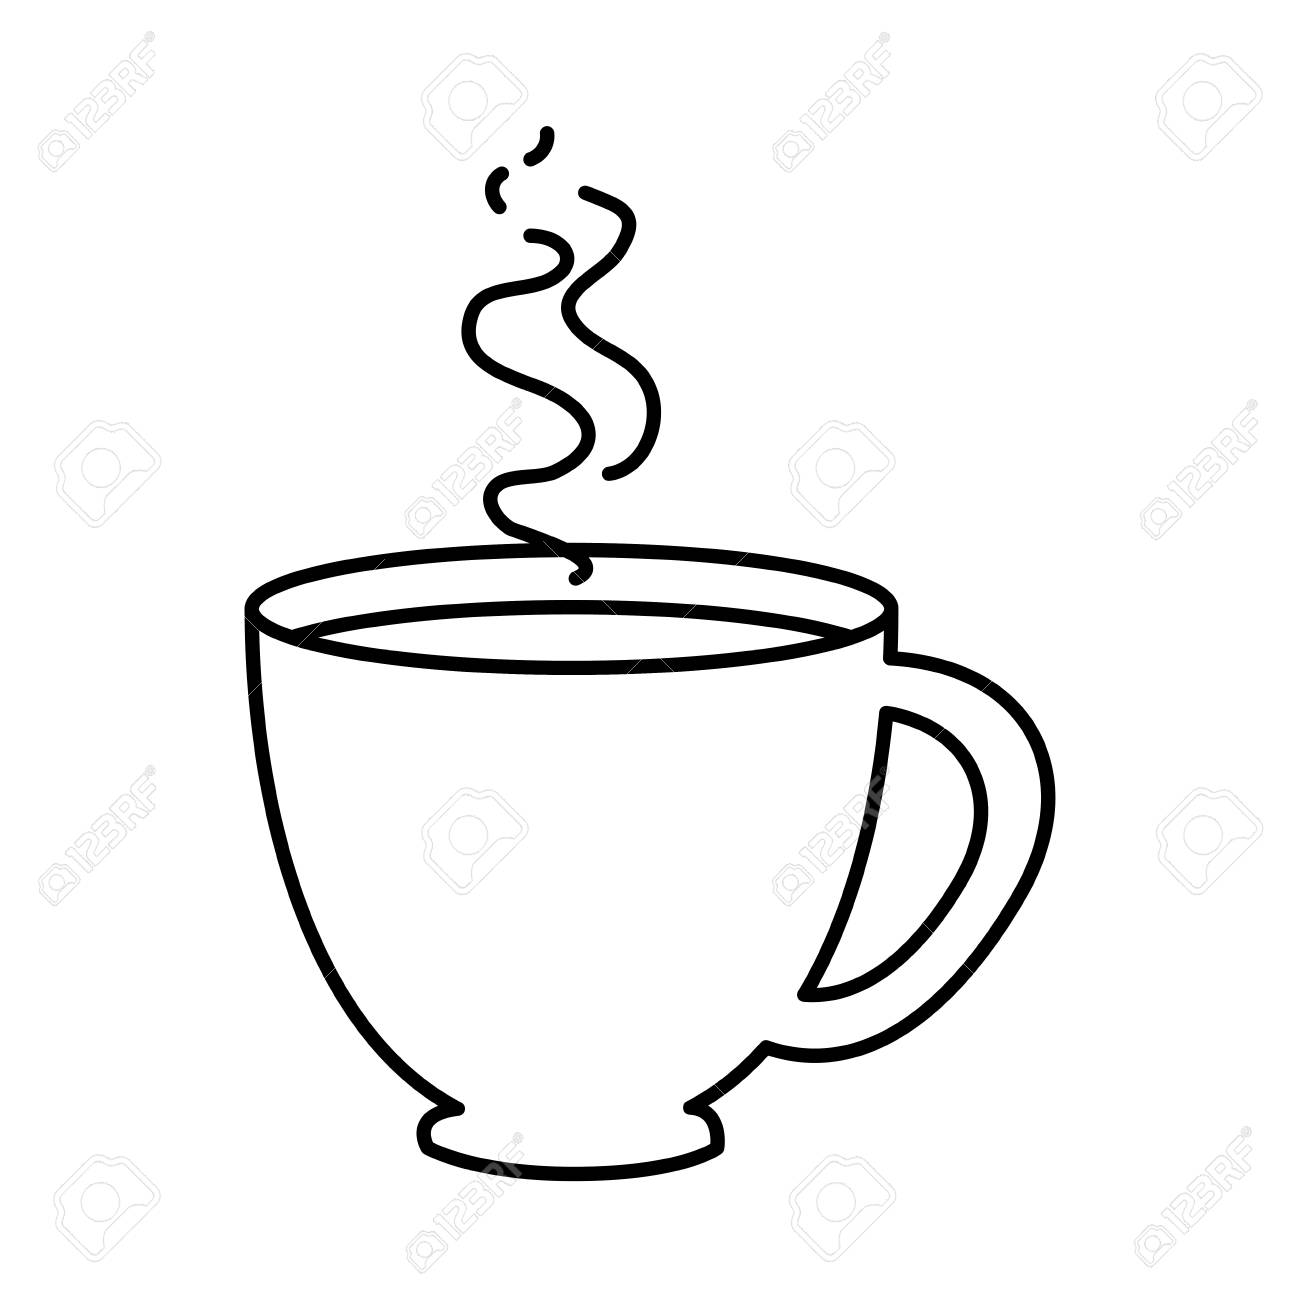 Coffee Mug Icon Over White Background Vector Illustration Royalty Free Cliparts Vectors And Stock Illustration Image 82072787